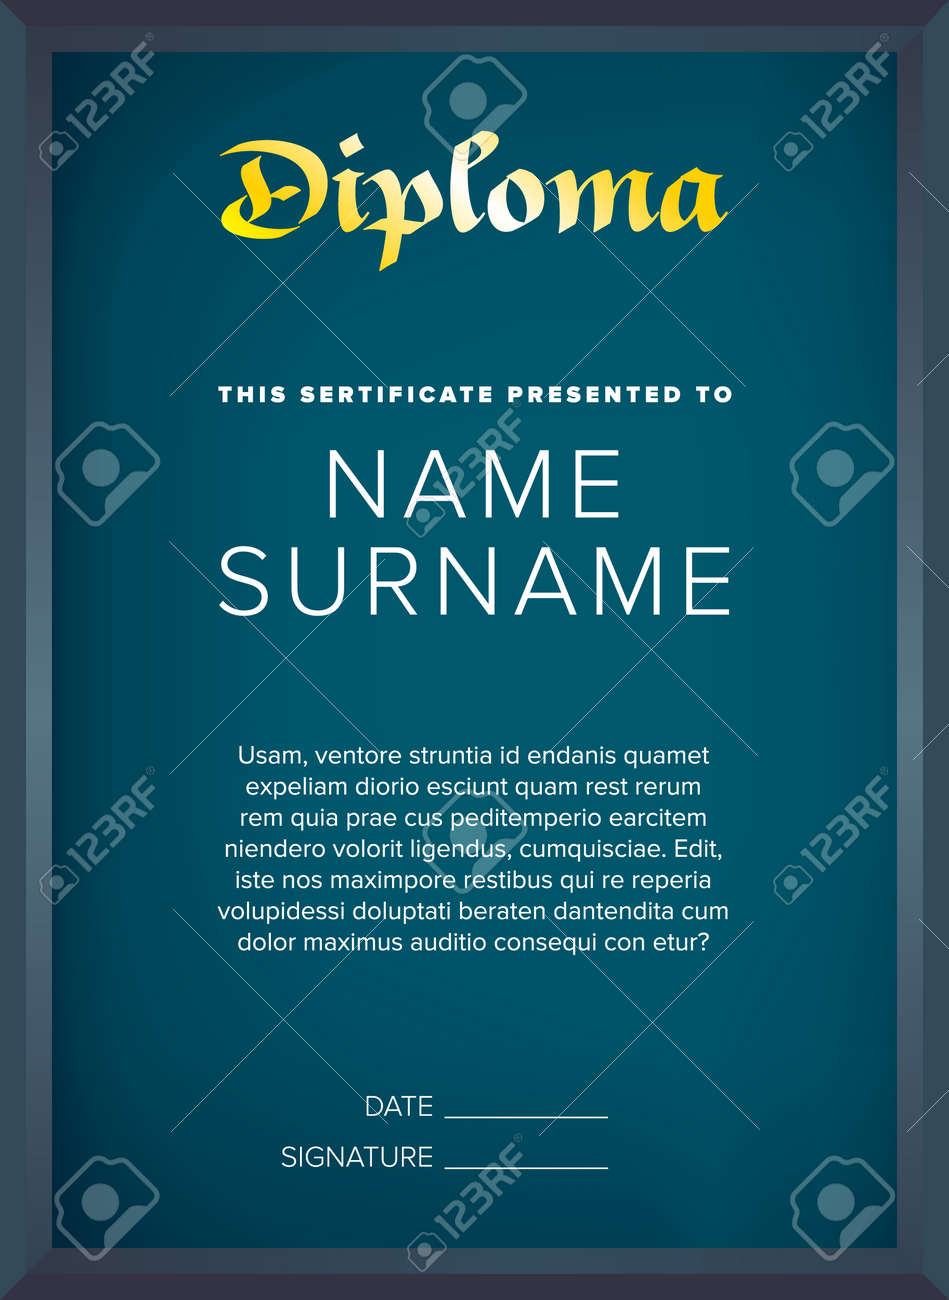 Diploma, Certificate Design Template With Seal And Ribbon Royalty ...